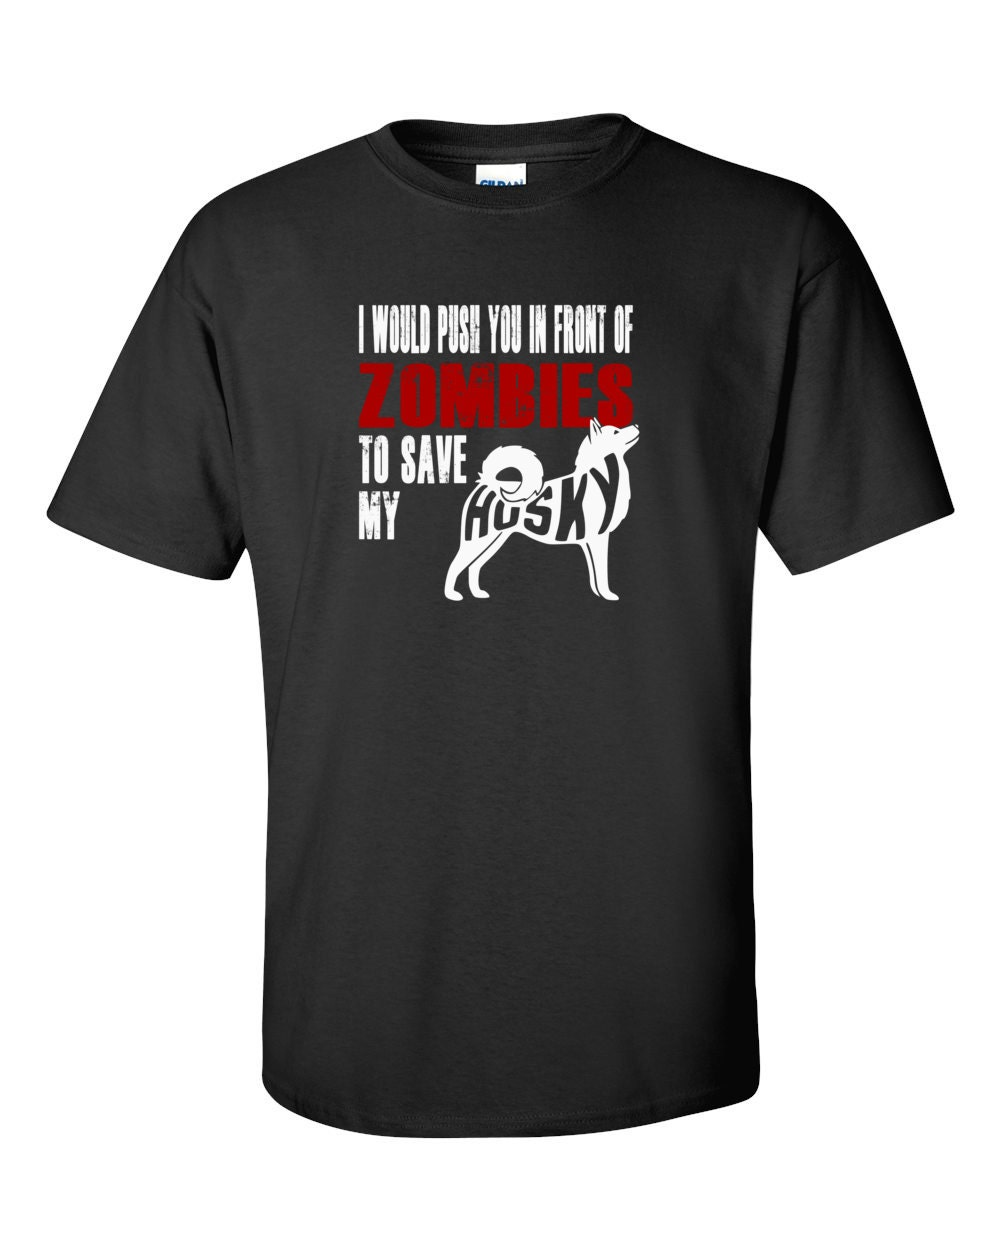 Husky T-shirt - I Would Push You In Front Of Zombies To Save My Husky - My Dog Husky T-shirt